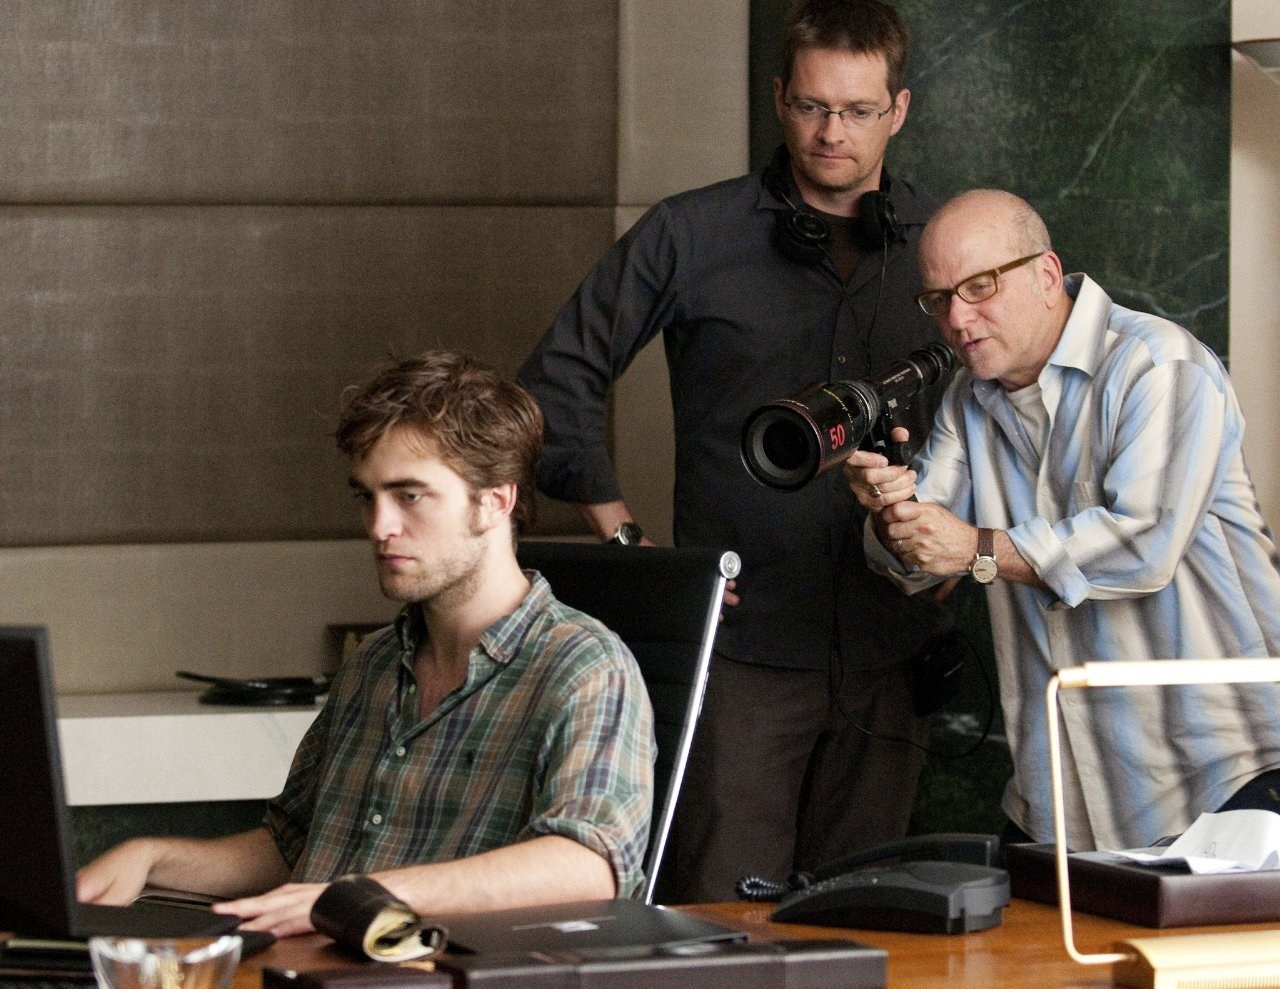 Remember Me (2010) Behind the Scenes